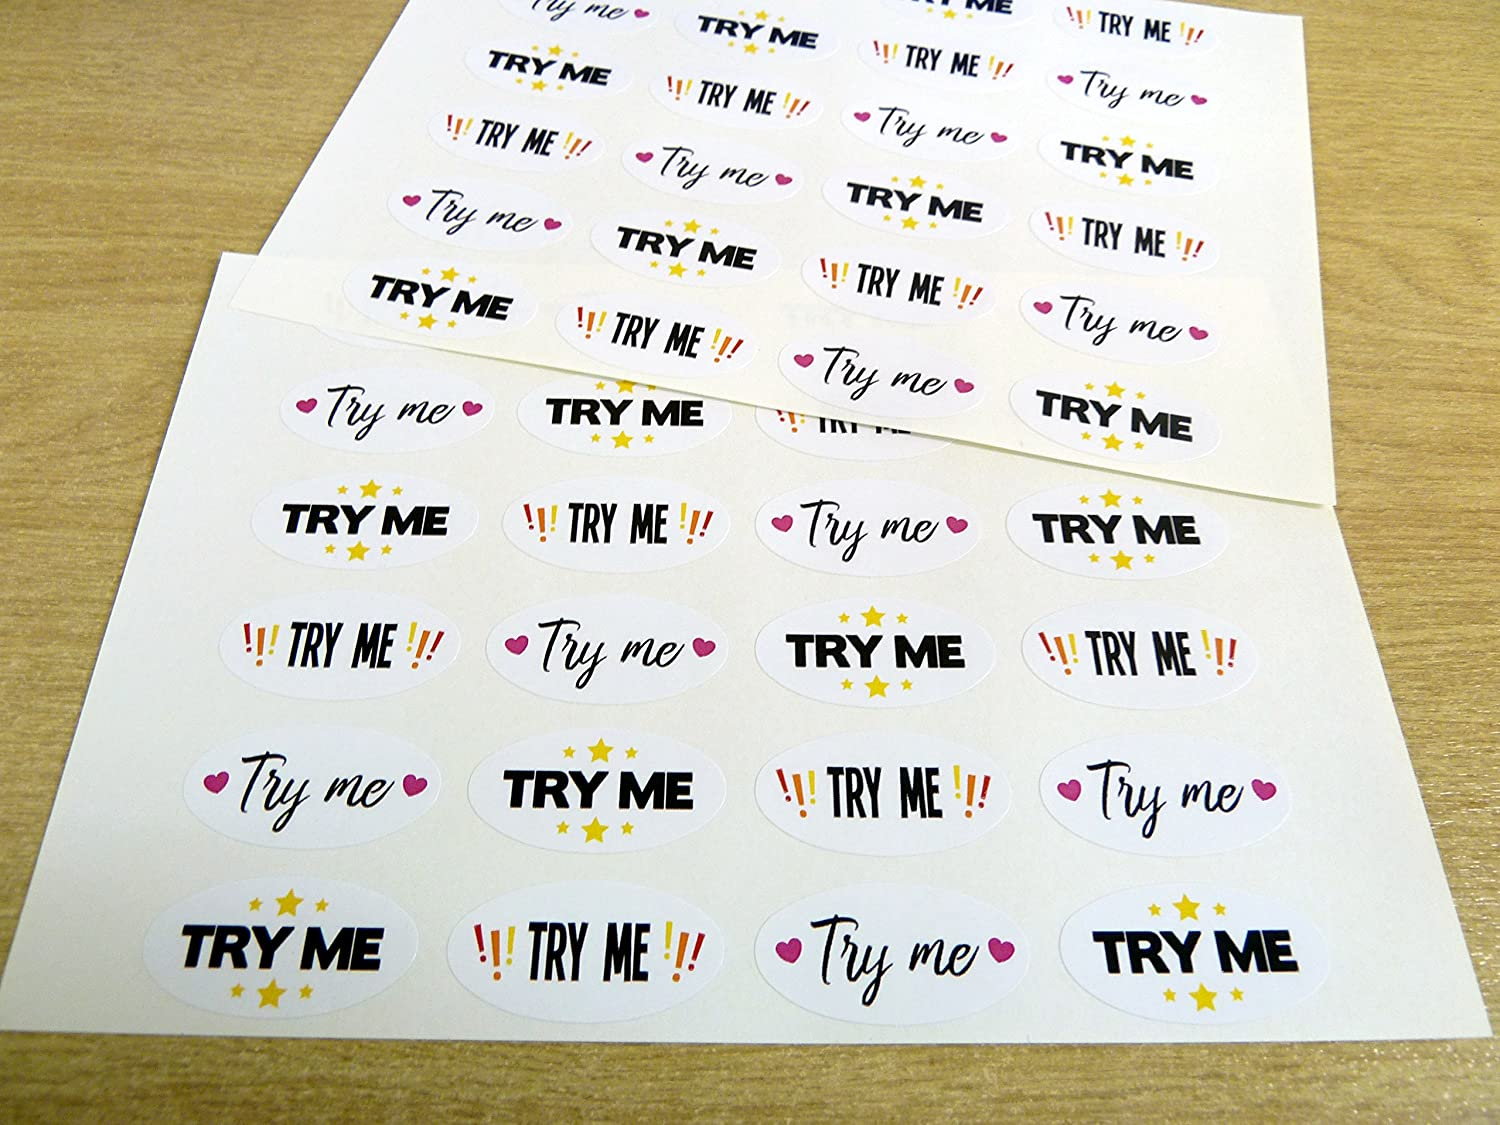 'Try Me' Oval Shaped Stickers, Colourful Promotional Retail Labels for Craft Products, Samples Stalls and Shops Minilabel